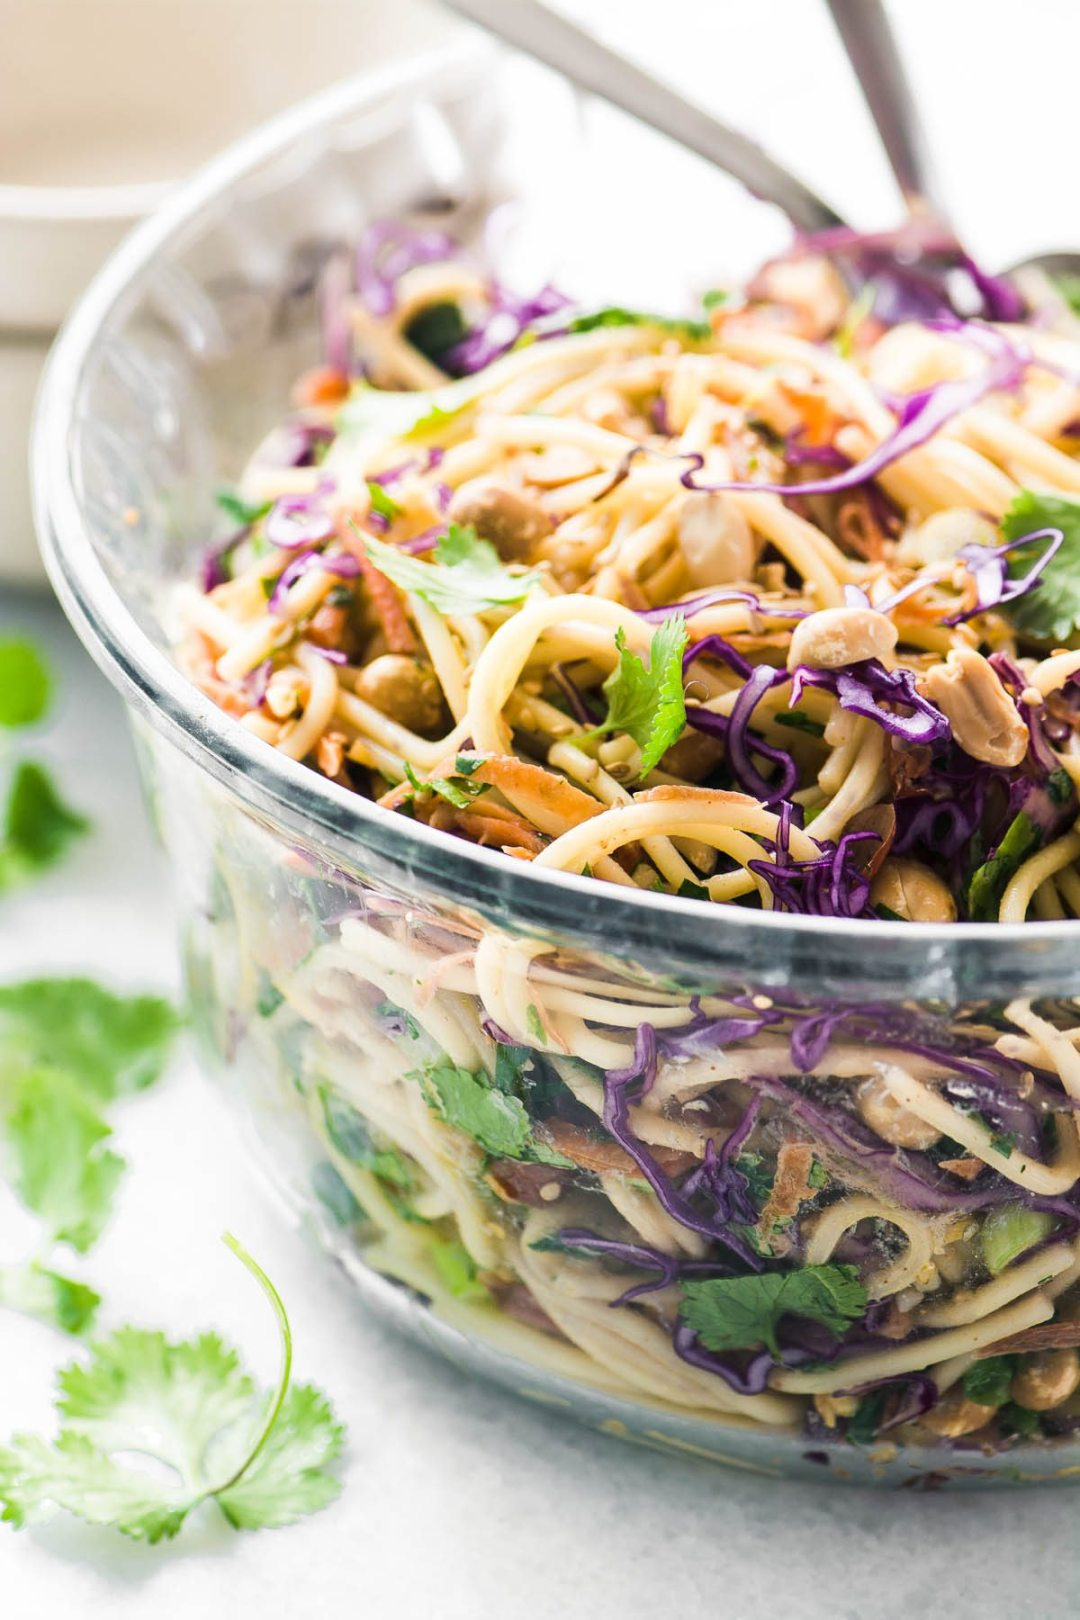 A spicy Thai spaghetti salad in a glass bowl with cilantro leaves